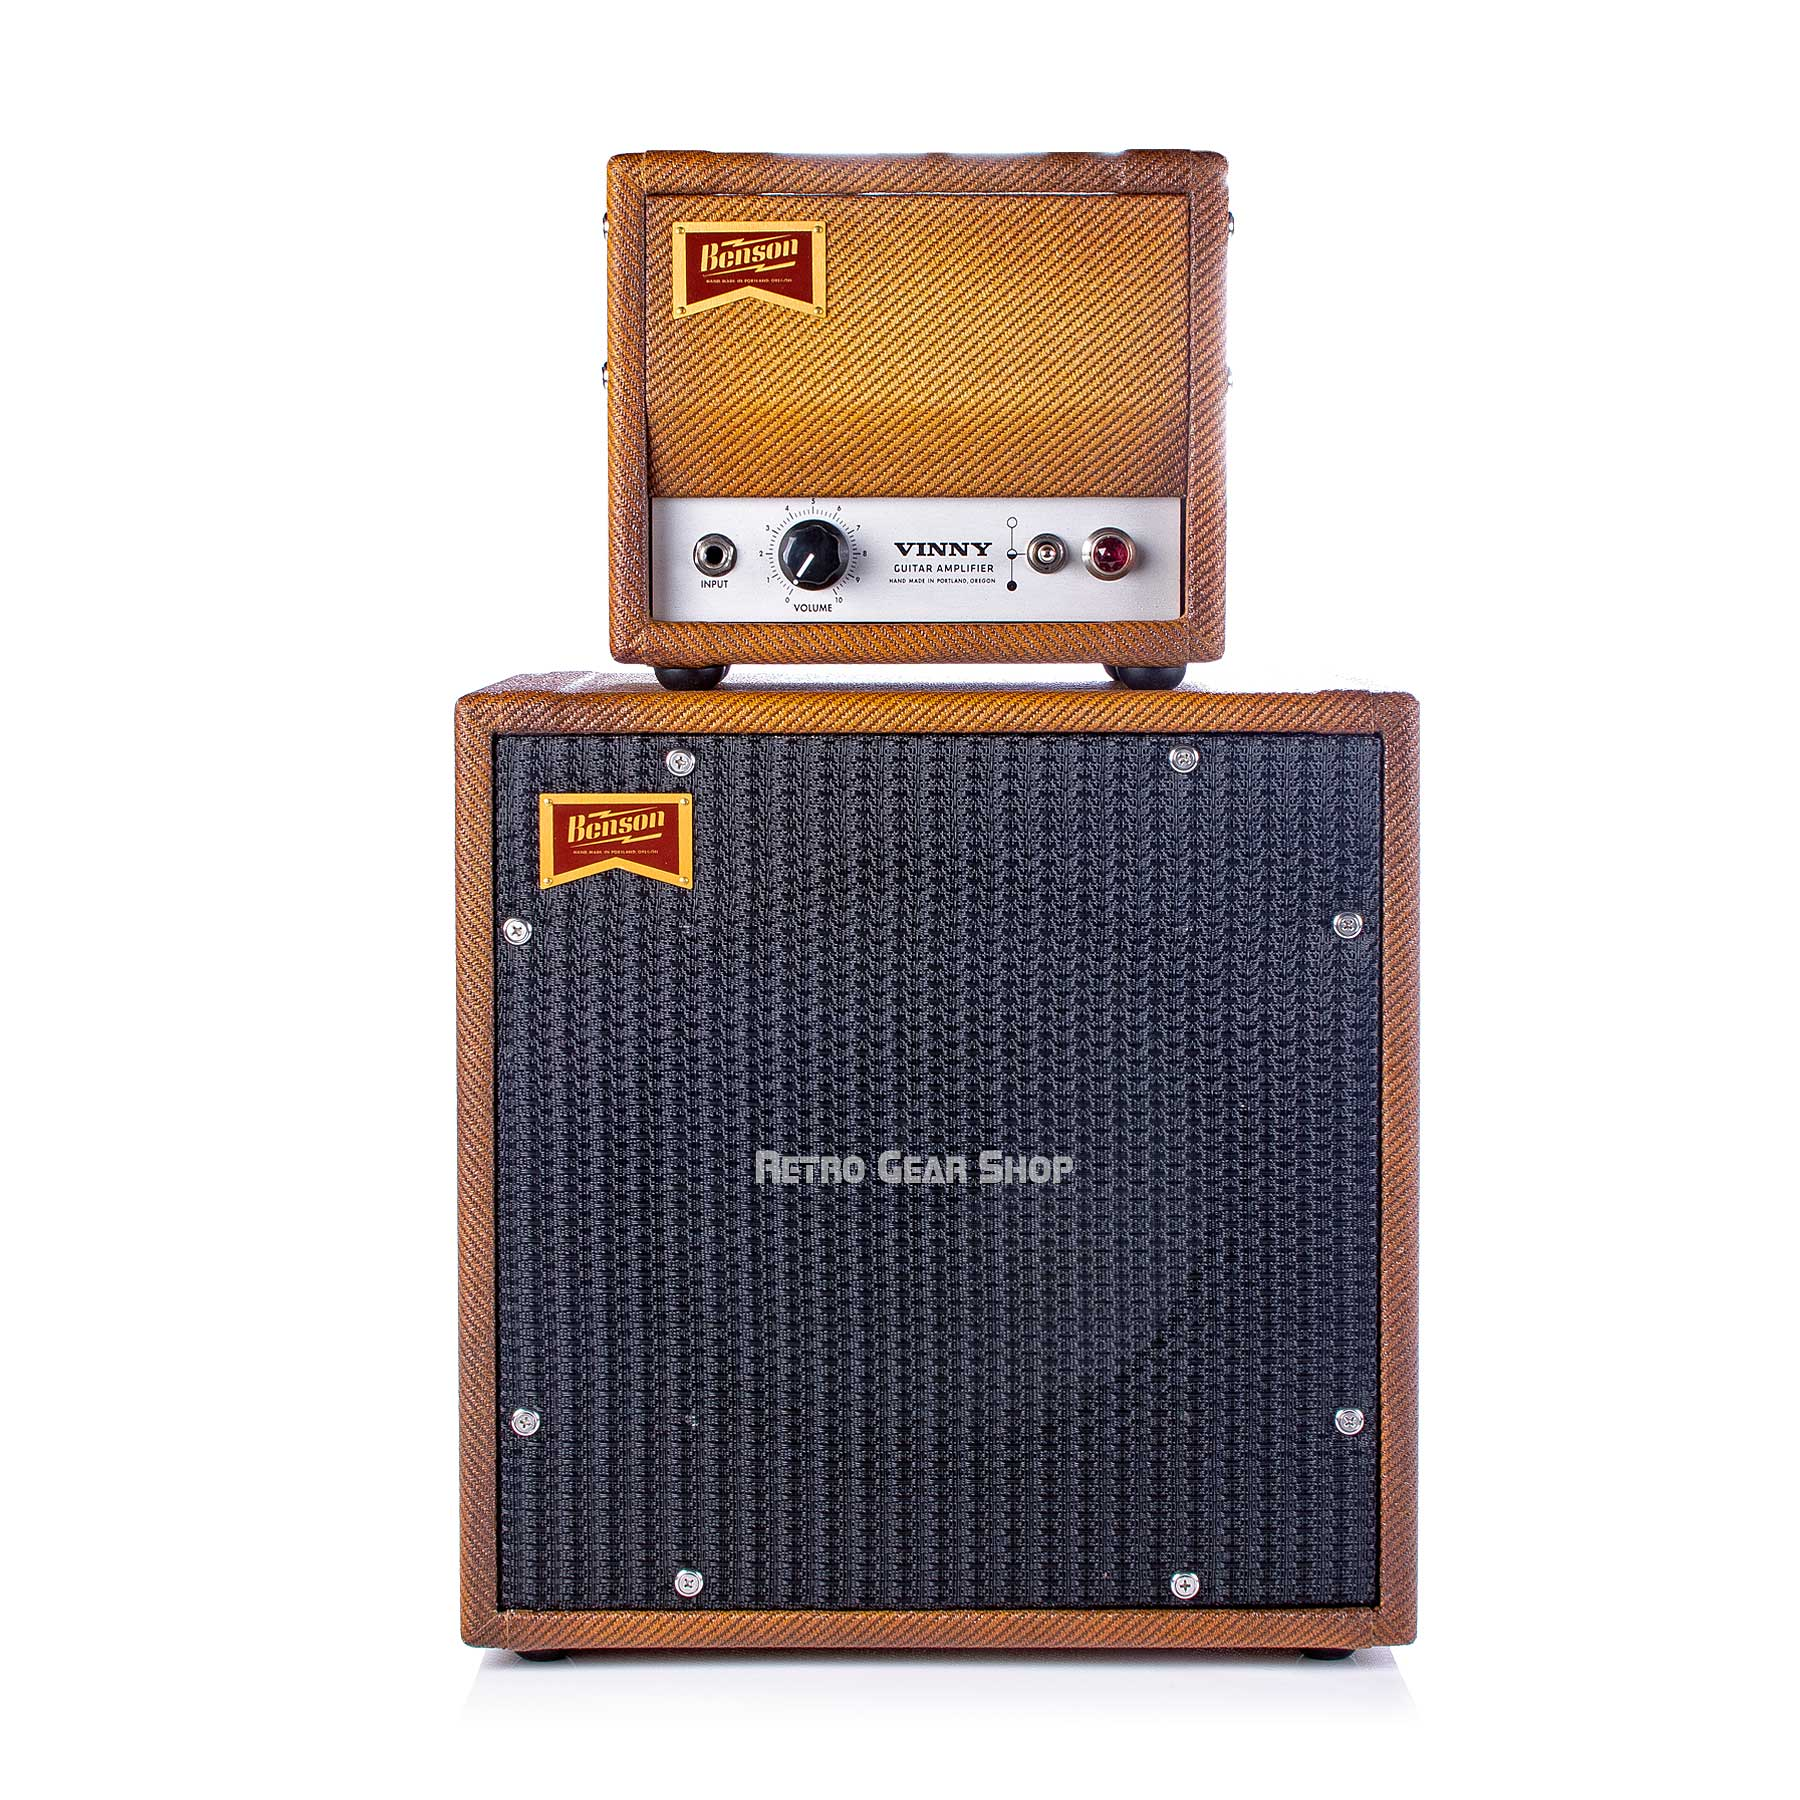 Benson Amps Vinny 1 Watt Head Bourbon Burst Finish Cab